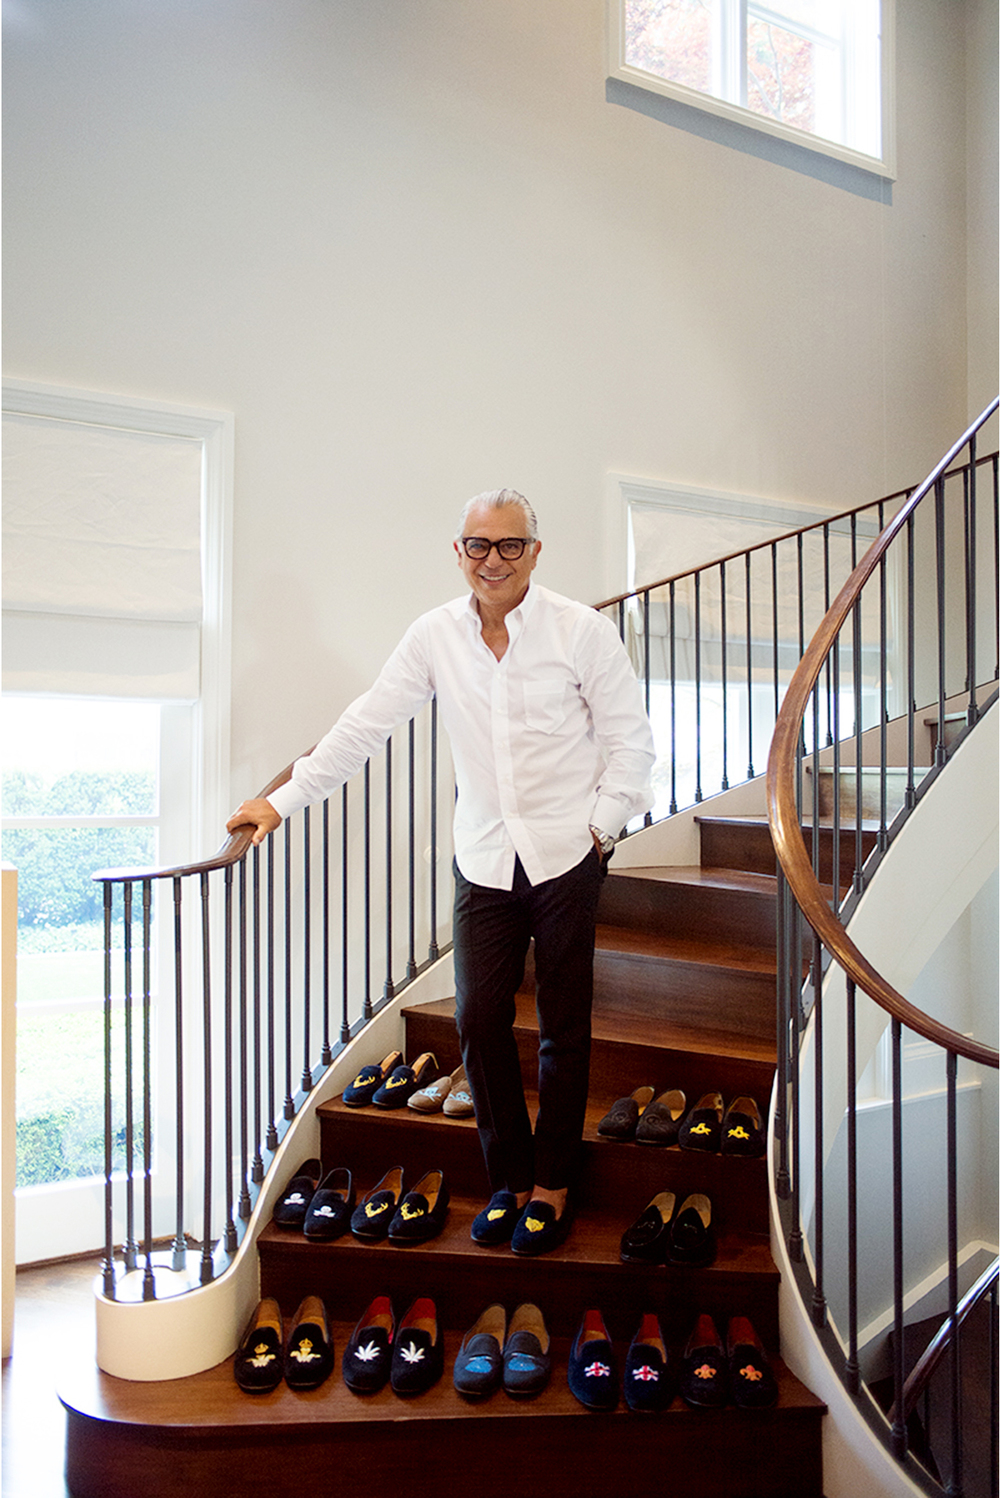 JOE MIMRAN, PHOTOGRAPHED FOR SHARP MAGAZINE, TORONTO, 2014